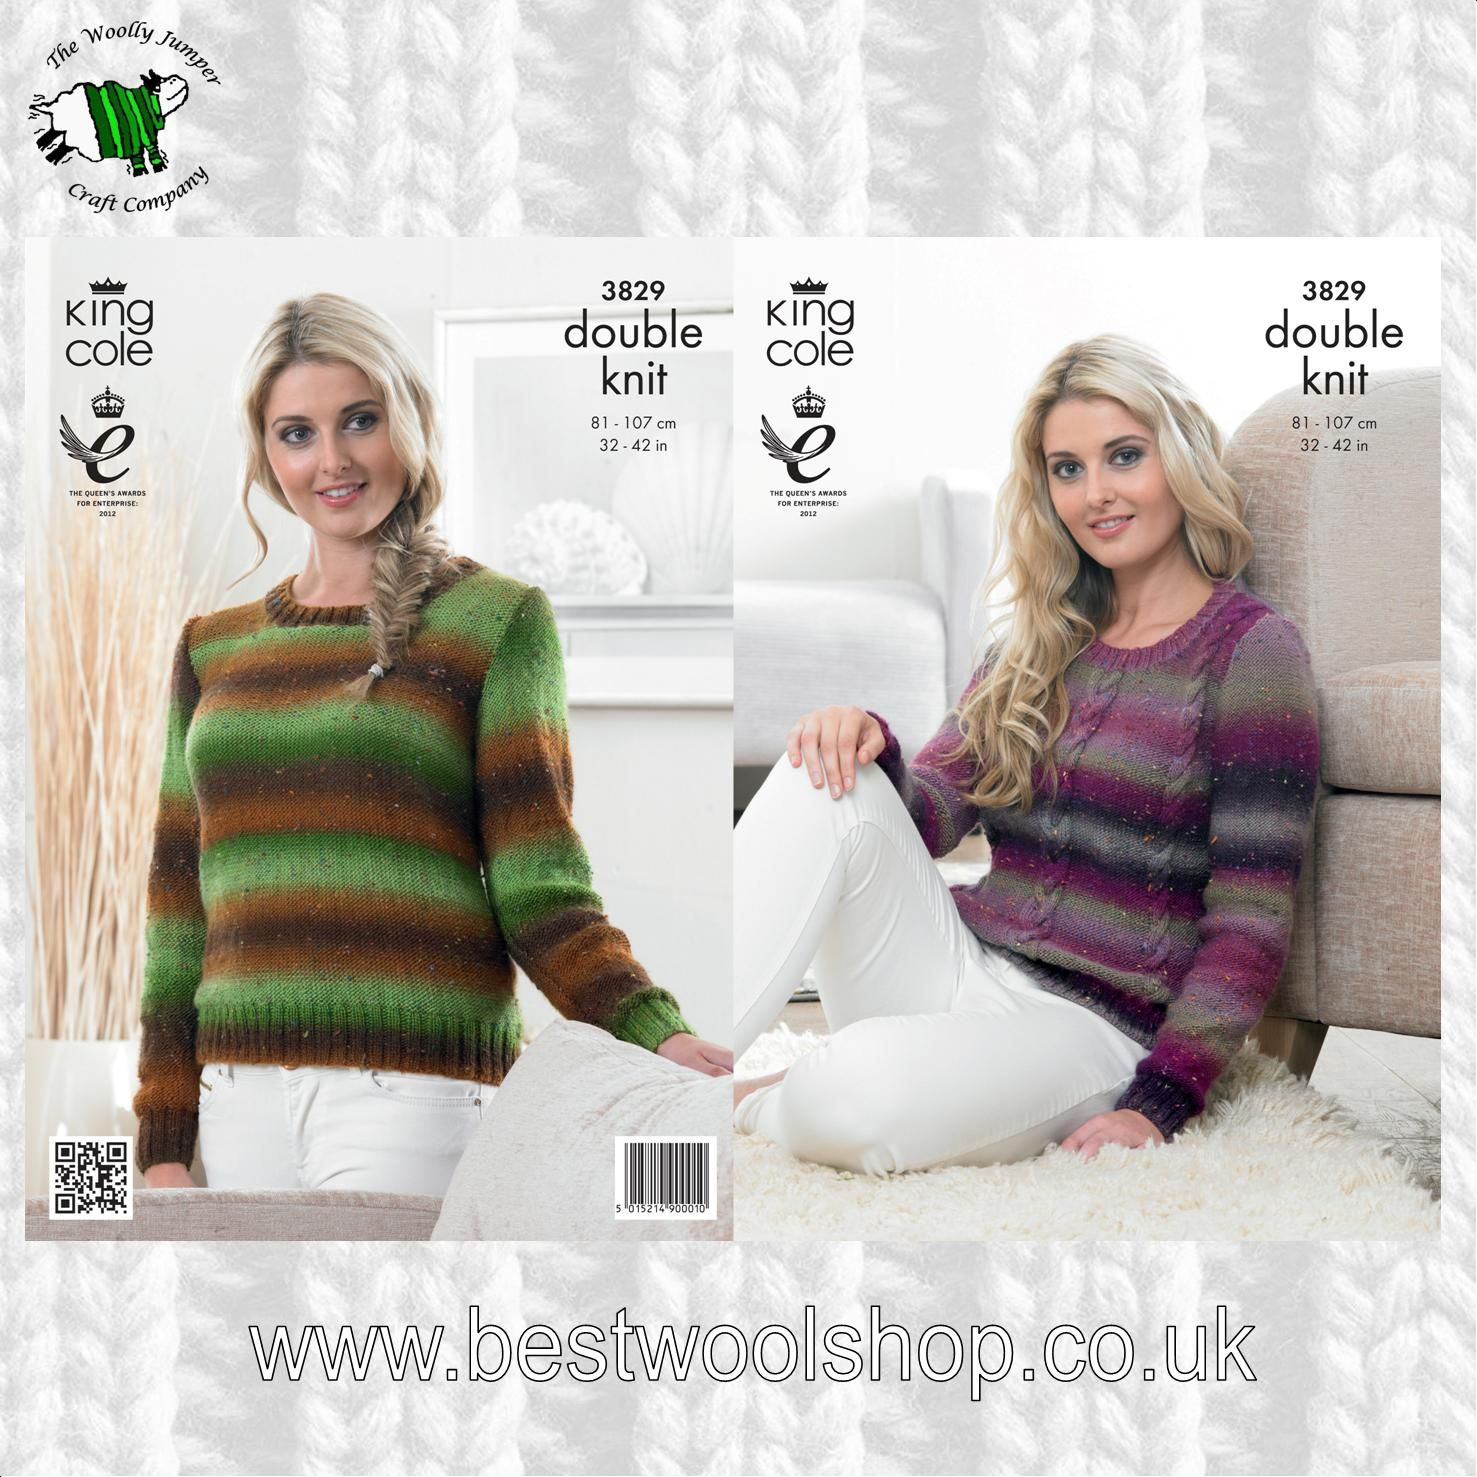 6d4b9cb99 3829 - KING COLE COUNTRY TWEED DK PLAIN   CABLED SWEATER WITH SET IN  SLEEVES KNITTING PATTERN - TO FIT CHEST 32 TO 42